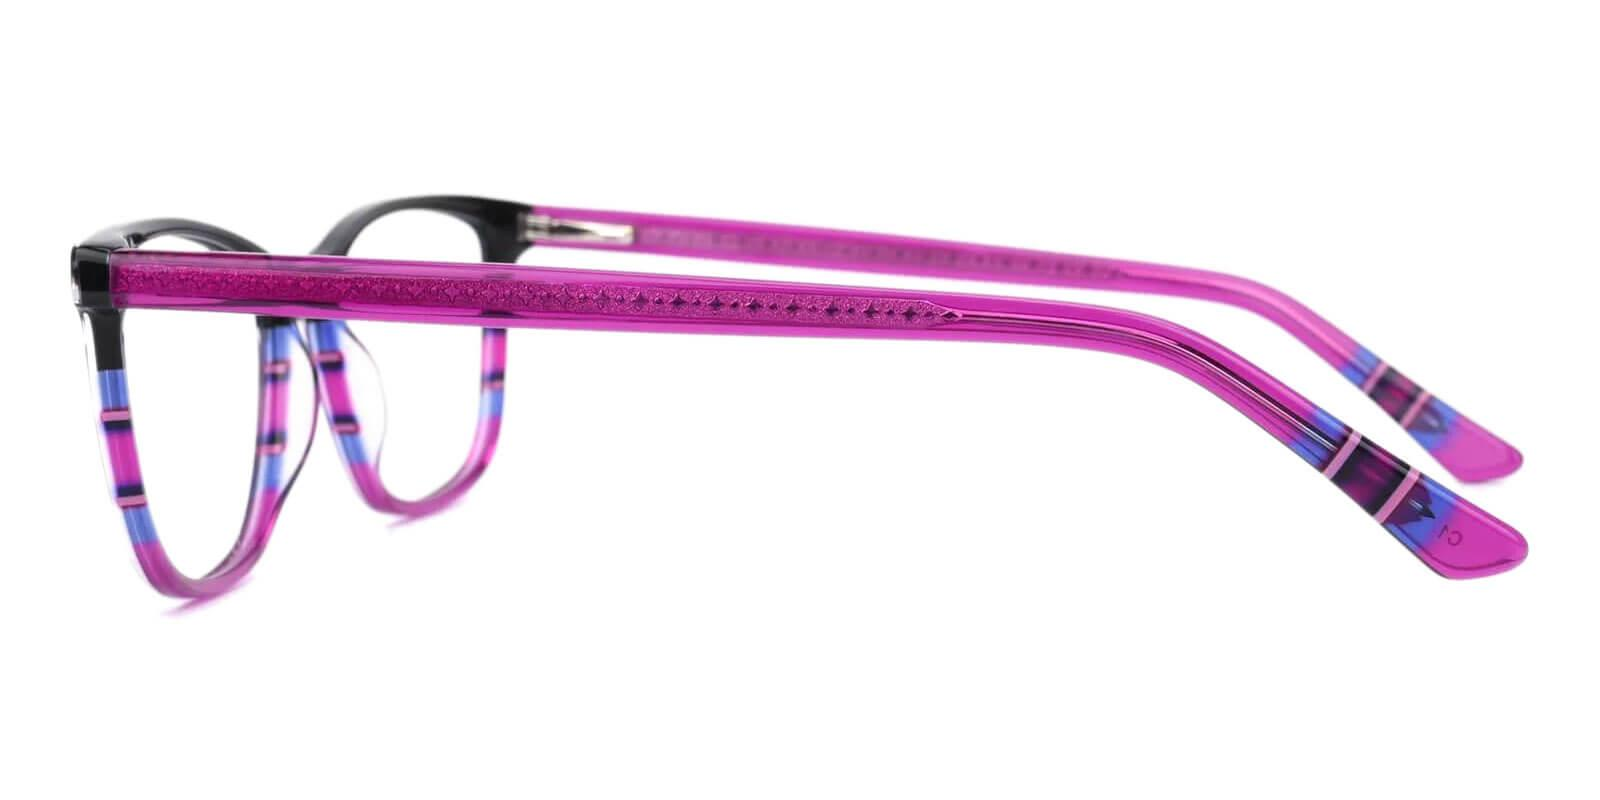 Wolfgang Purple Acetate Eyeglasses , UniversalBridgeFit Frames from ABBE Glasses